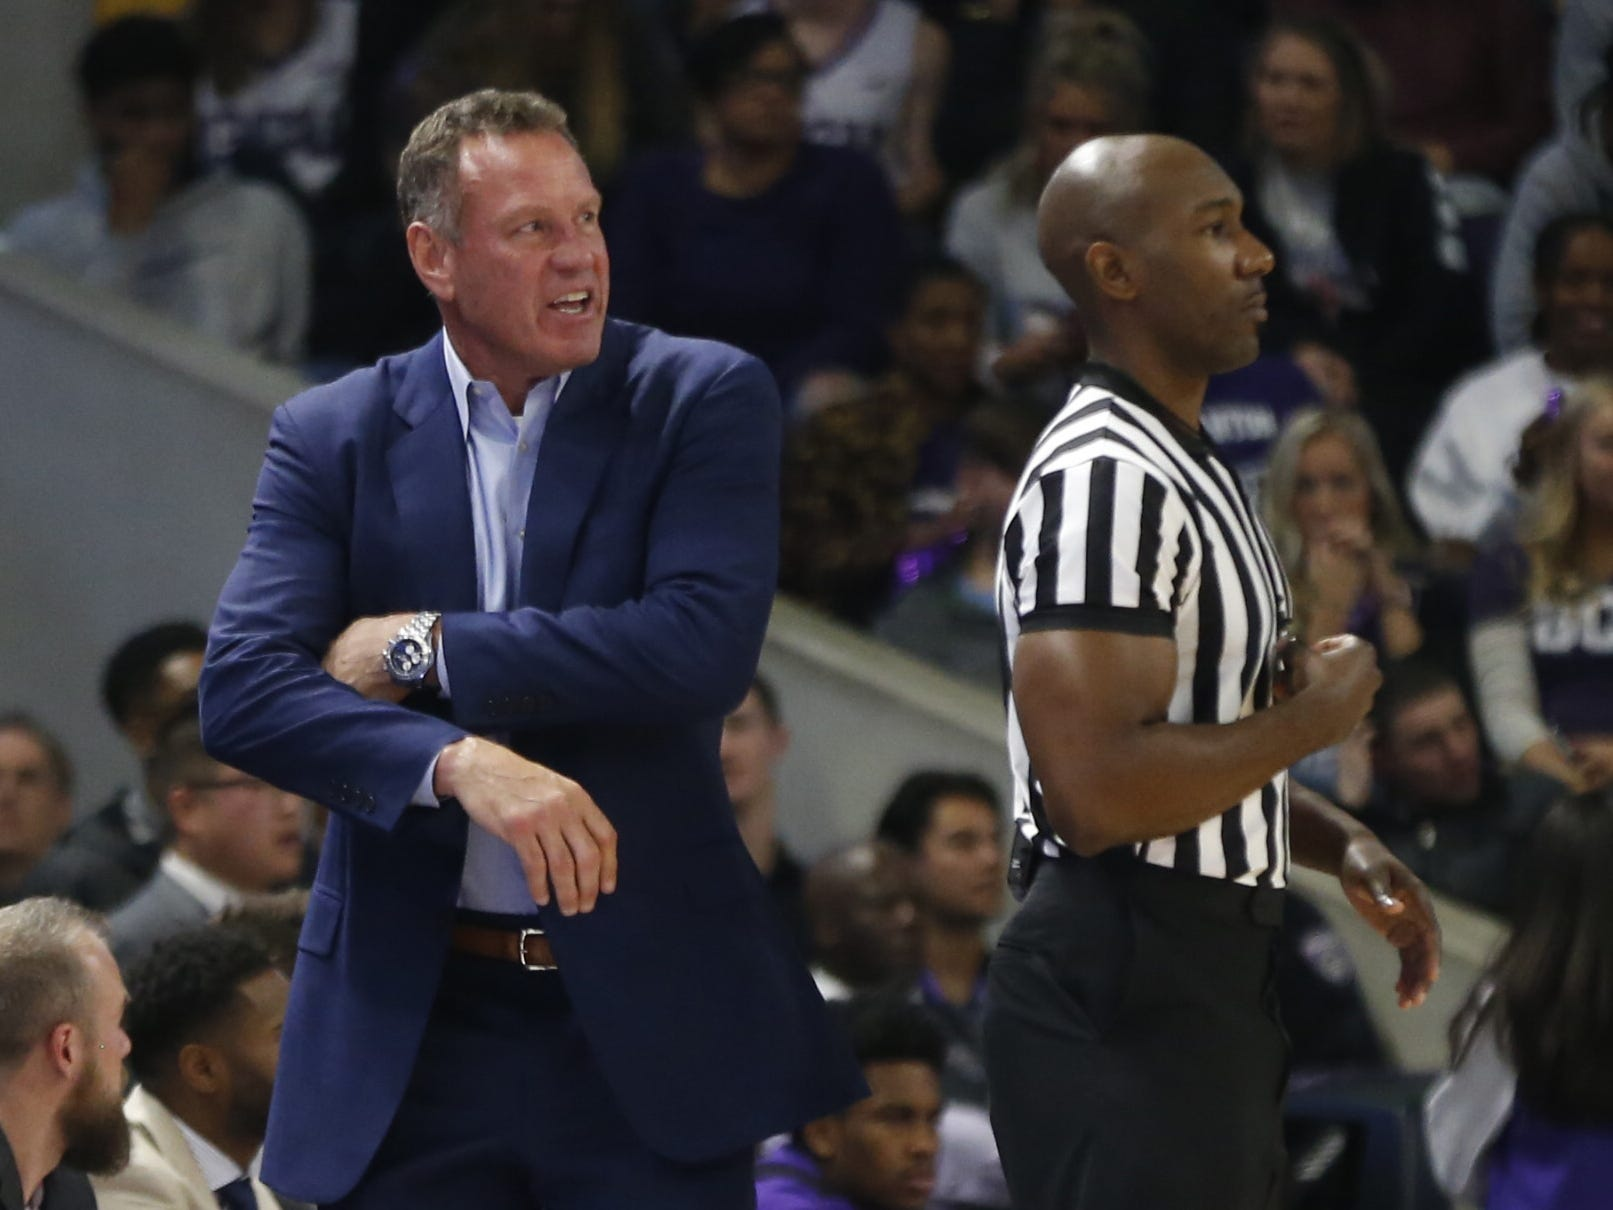 GCU's head coach Dan Majerle reacts to a call during the first half against New Mexico State at Grand Canyon University Arena in Phoenix, Ariz. on February 9, 2019.